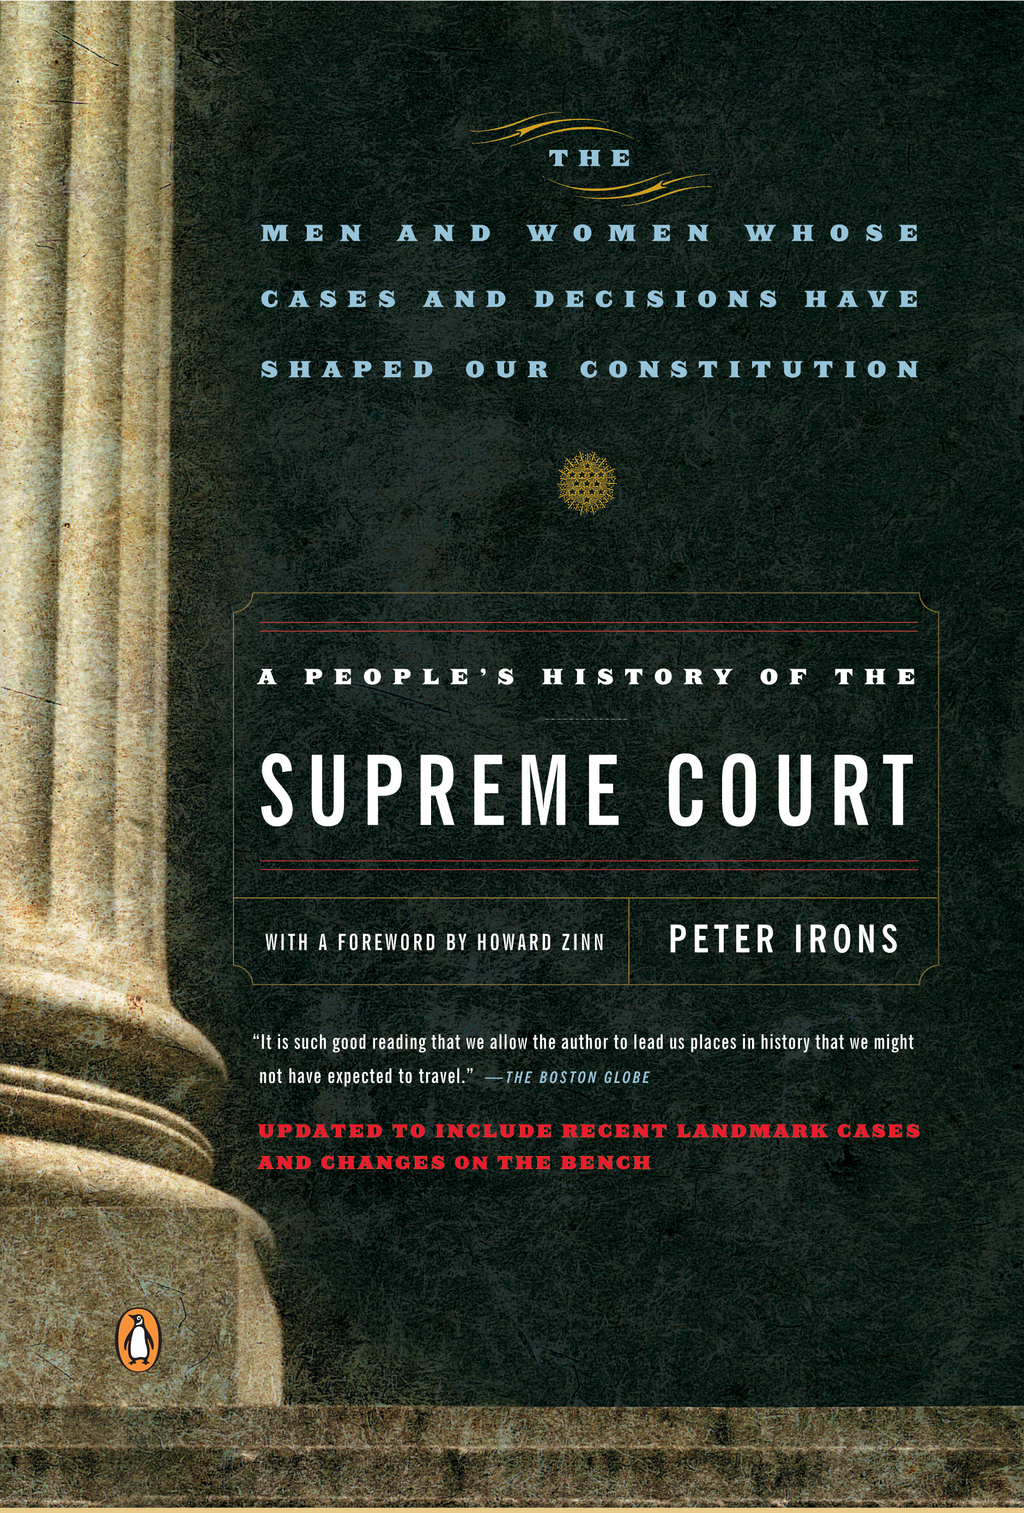 A People's History of the Supreme Court: The Men and Women Whose Cases and Decisions Have Shaped OurConstitution: Revised Edition By: Peter Irons